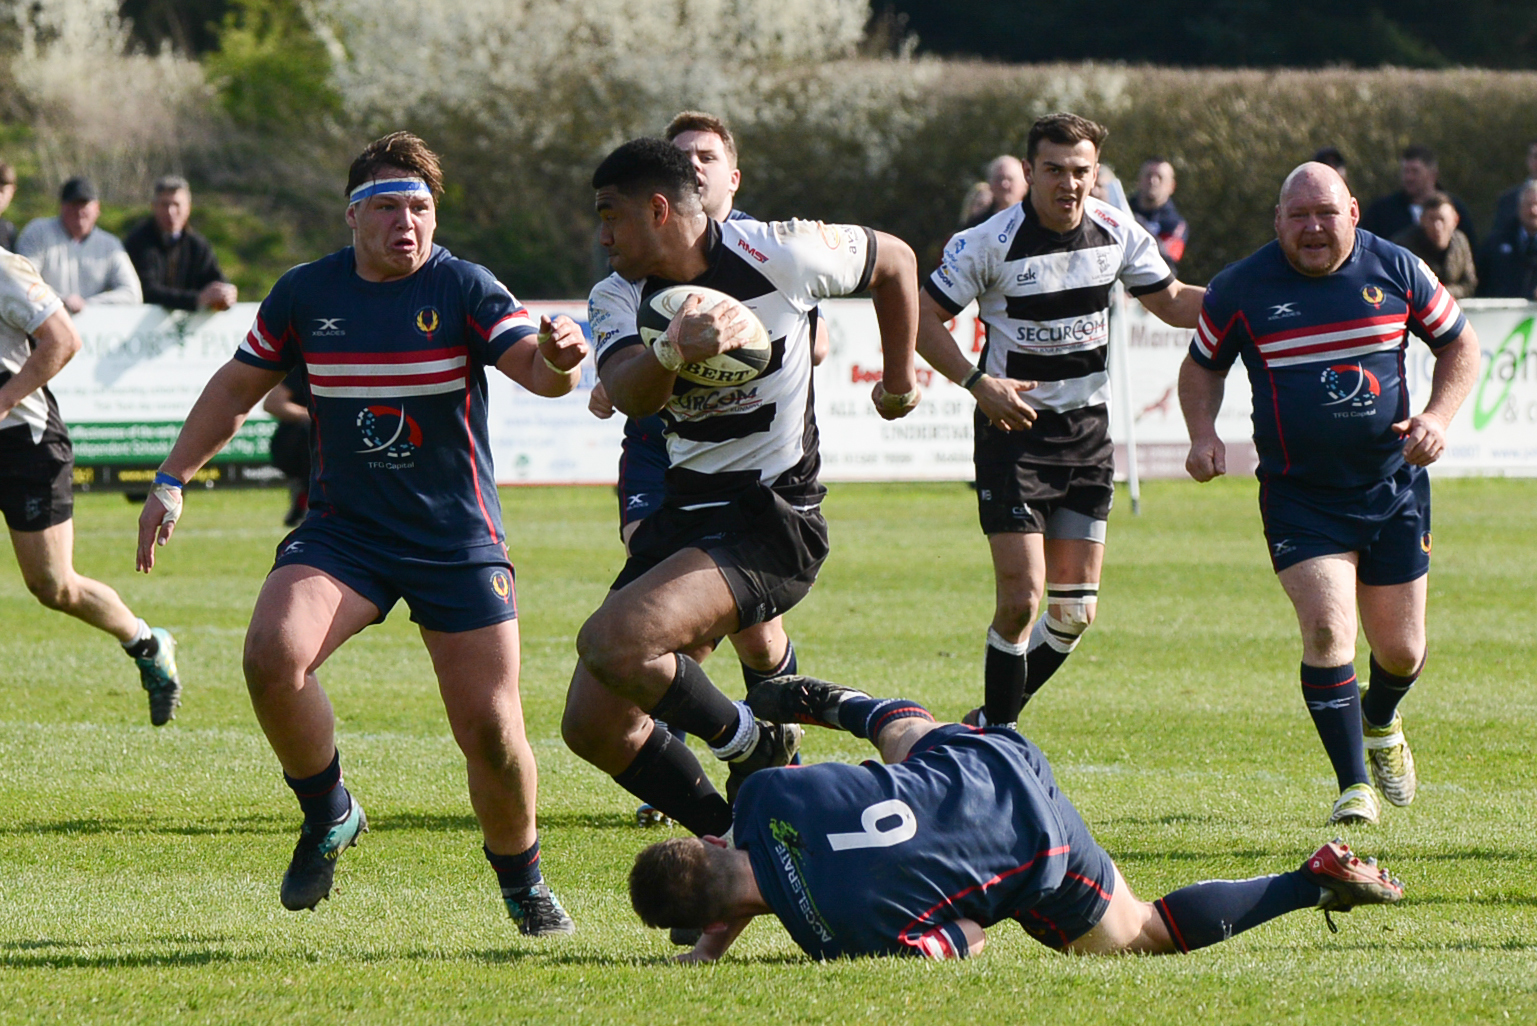 Isaac Fanueli scored a brace of tries for Luctonians against Lichfield (pictured during a previous match)